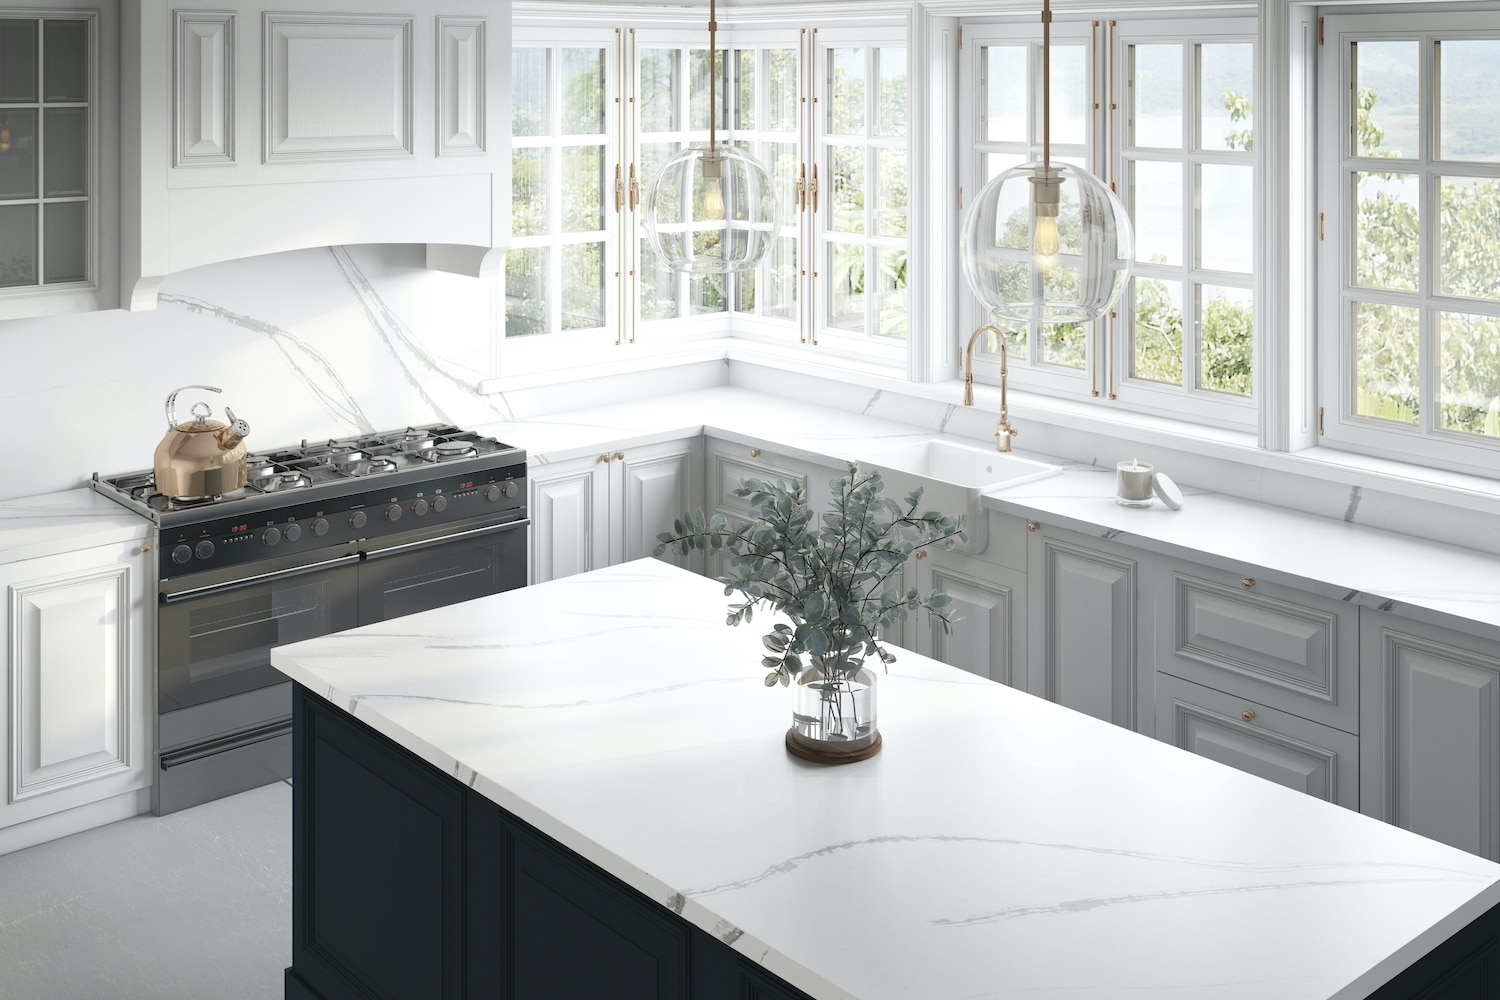 Faux Marble Trade Offs To Consider When Choosing Countertops Colonial Marble Granite